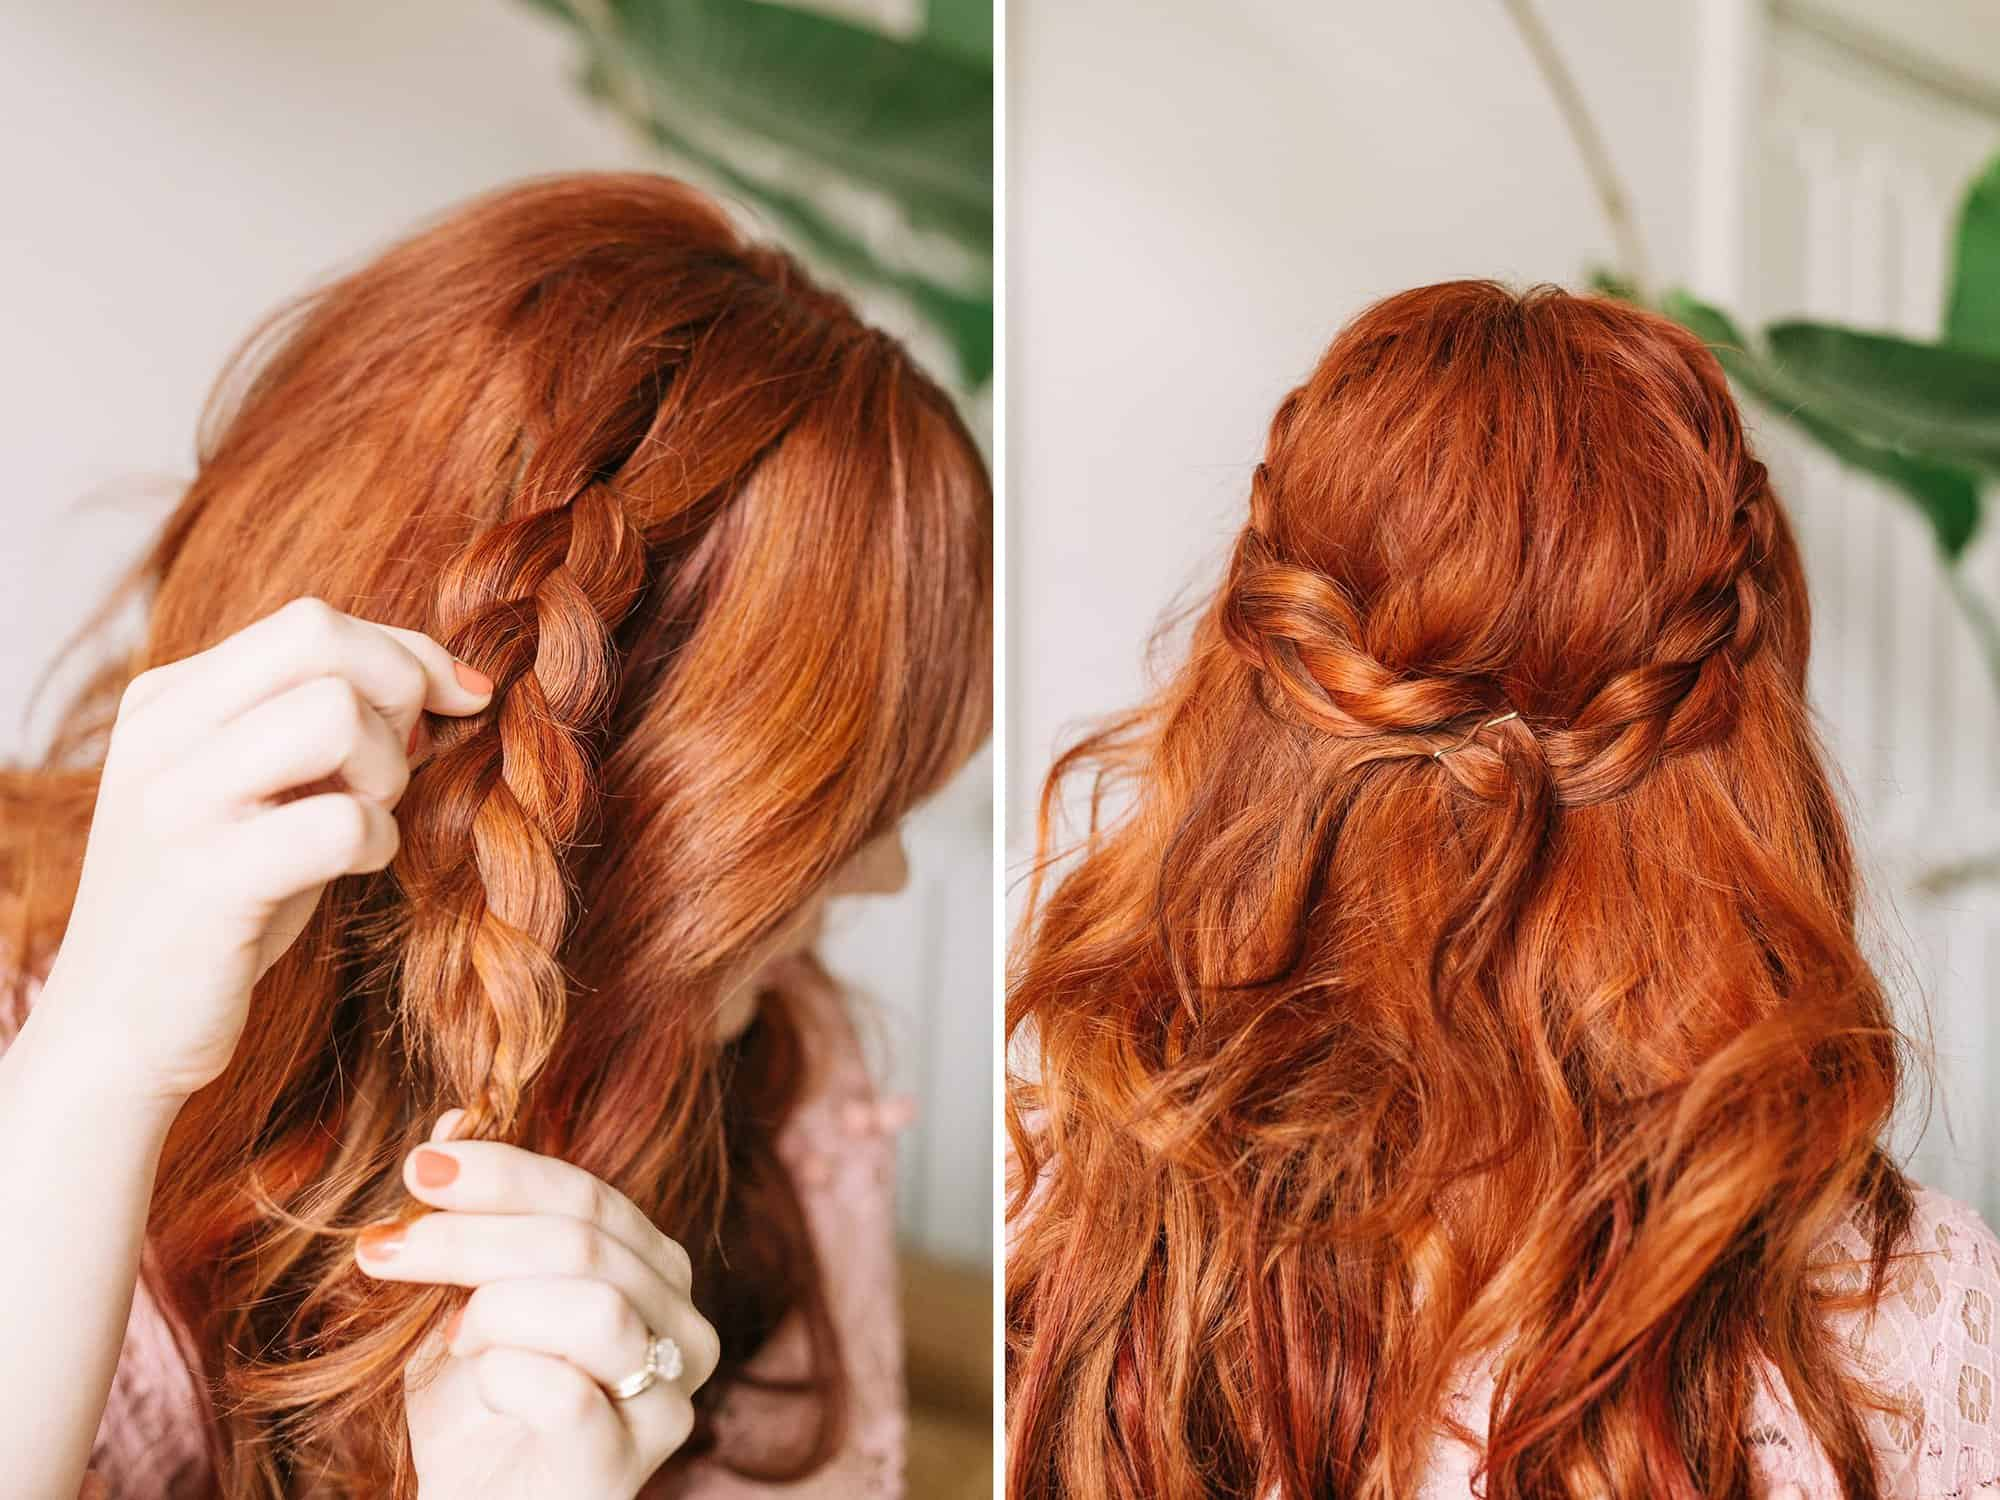 Braided wavy boho hair tutorial a beautiful mess step three pull braids out piece by piece so they look fuller baditri Choice Image